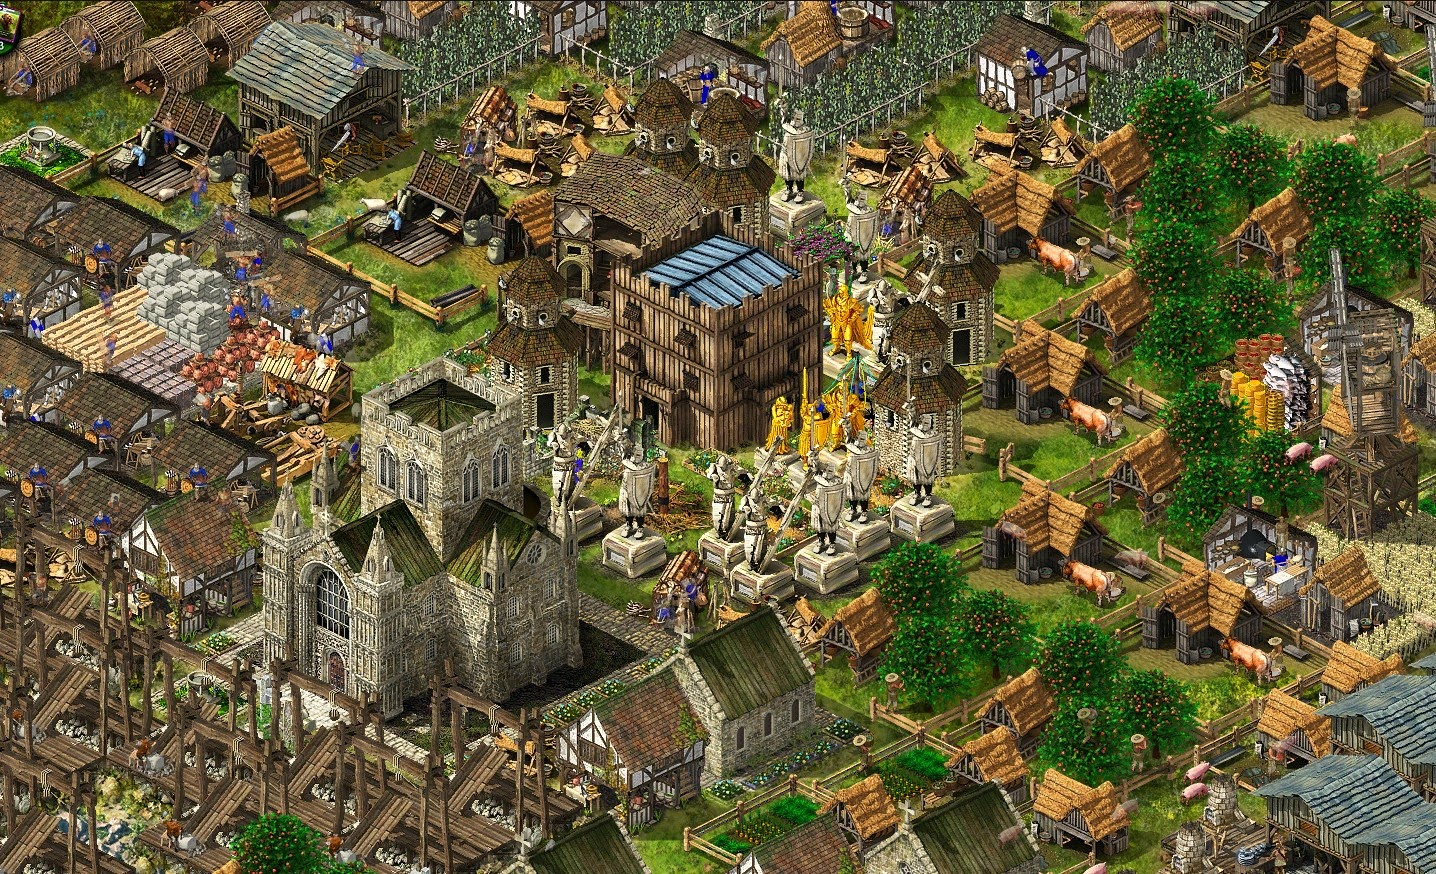 Download game strategi perang pc ukuran kecil koreapigirr0.